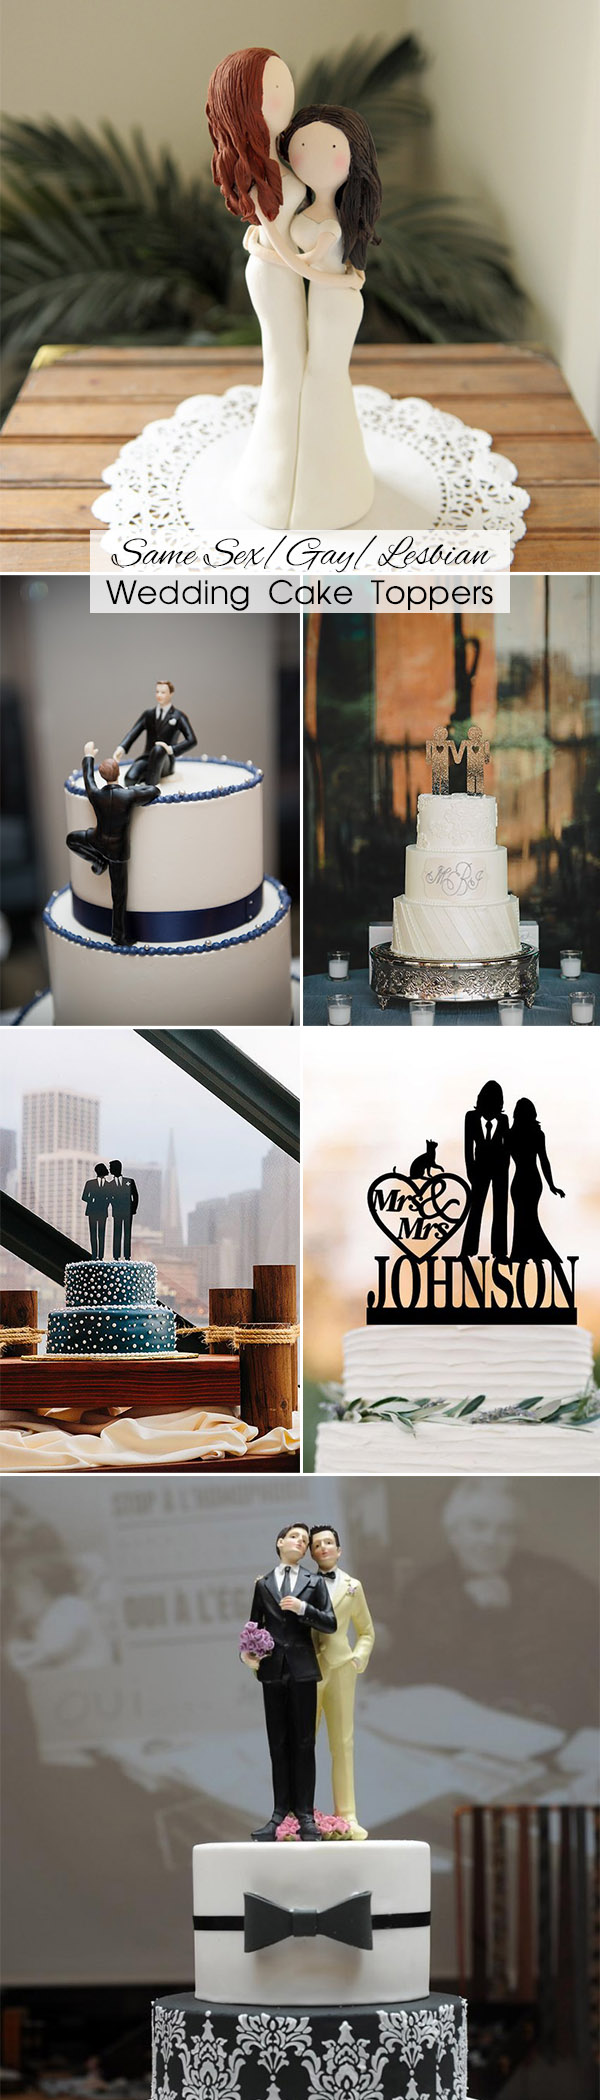 Same Sex Wedding Cake Toppers Ideas for Gay and Lesbian Couple